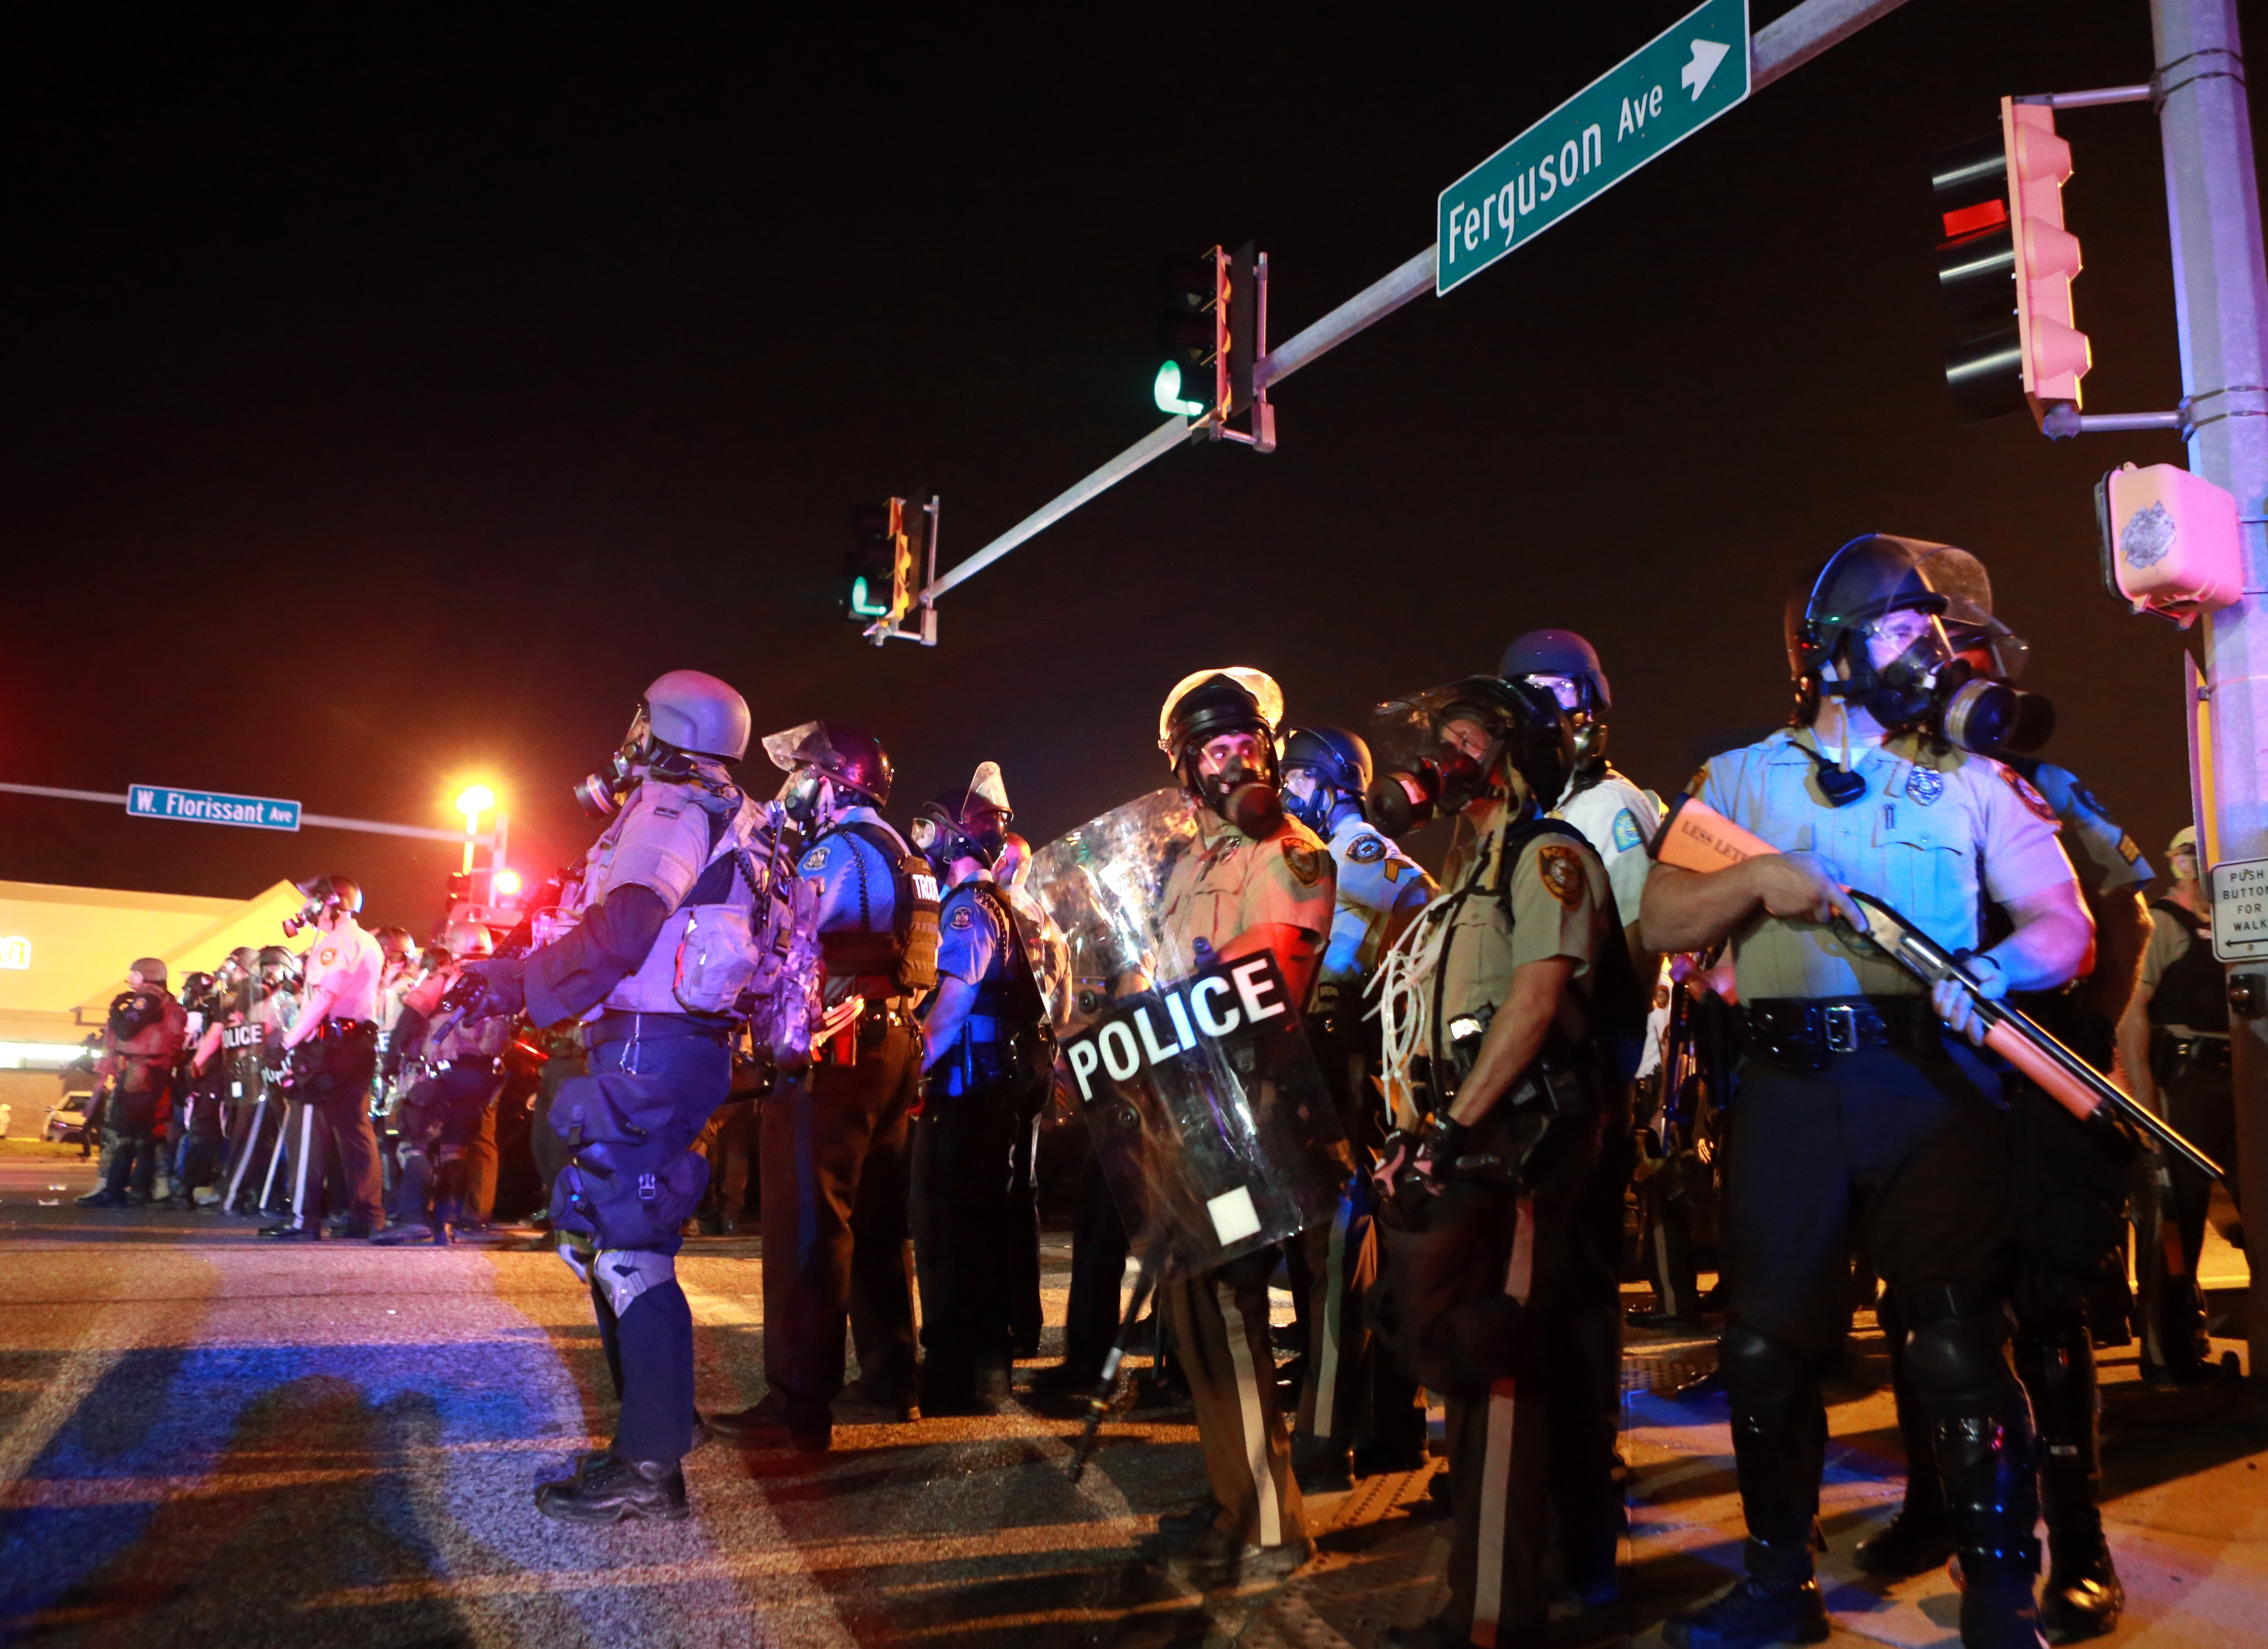 Police stand guard Monday, Aug. 18, 2014, in Ferguson, Mo.